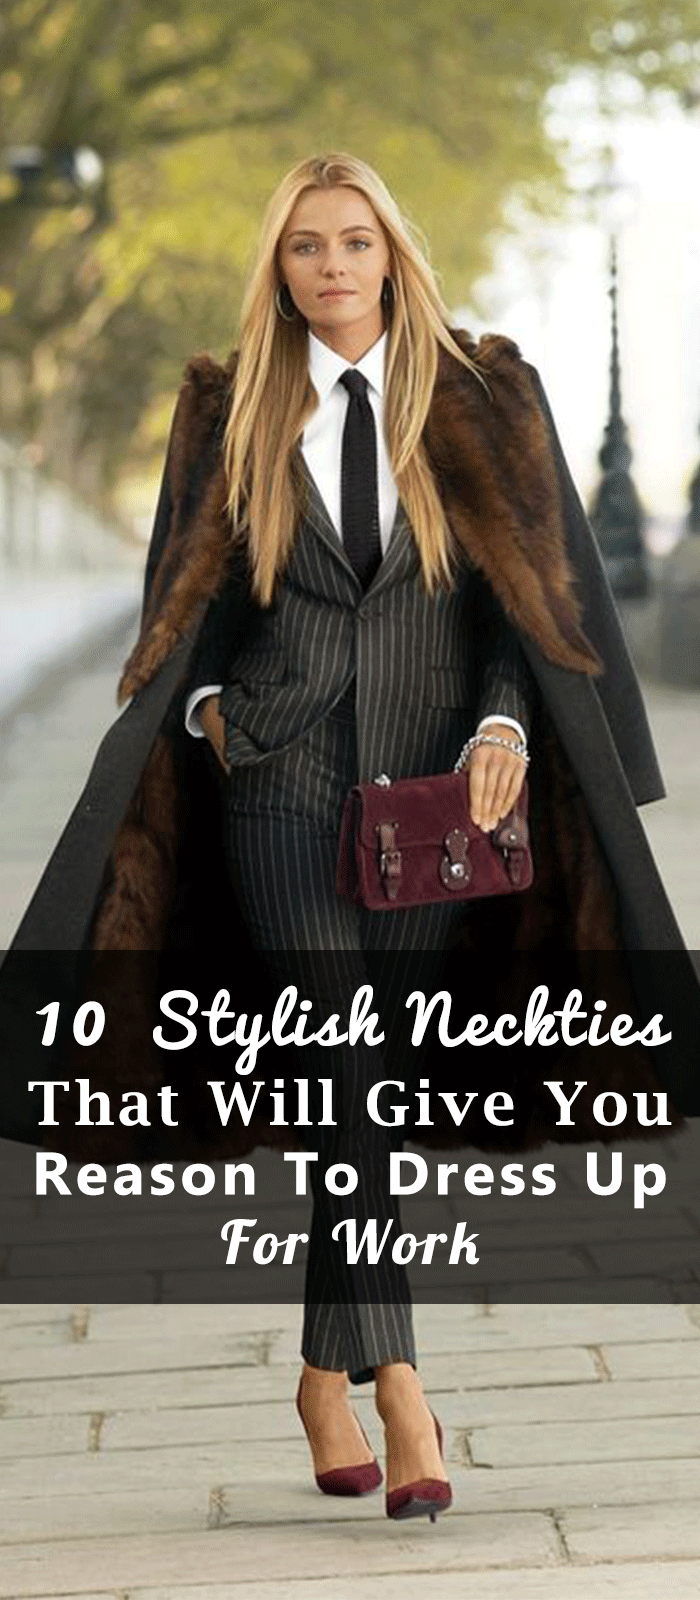 10 Stylish Neckties That Will Give You Reason To Dress Up For Work